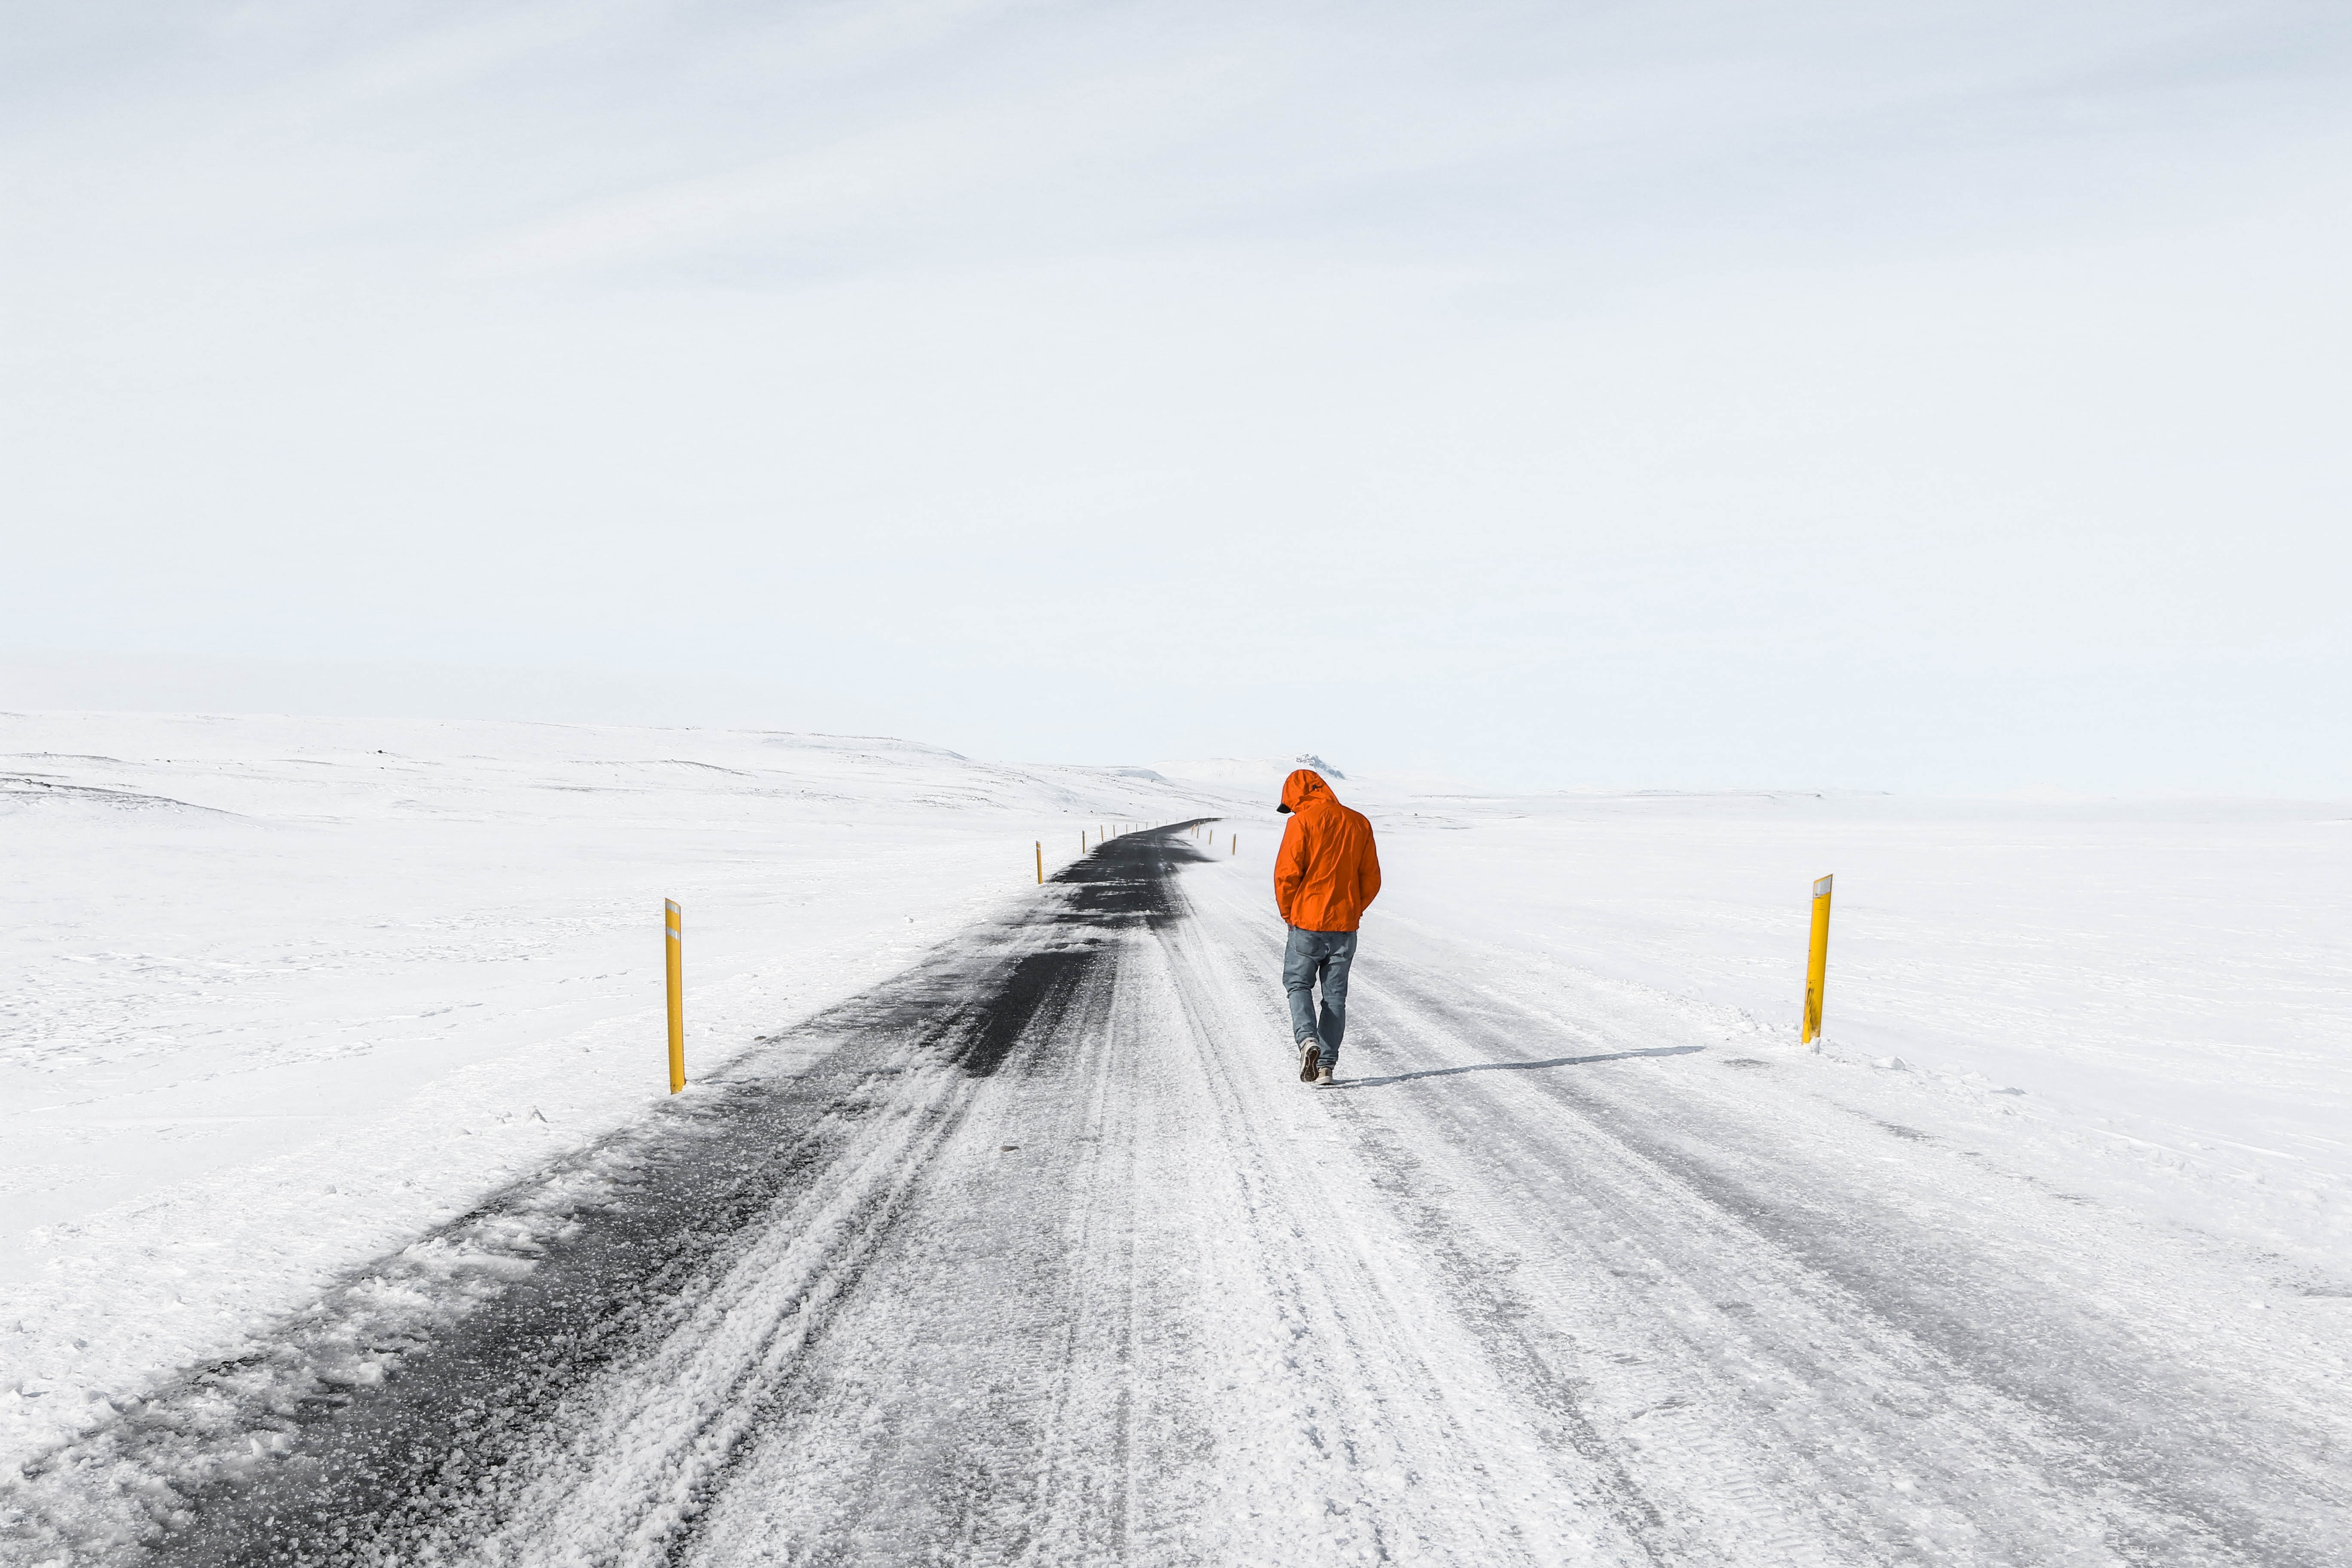 A lone man walking on a snowy road surrounded by snow-covered fields